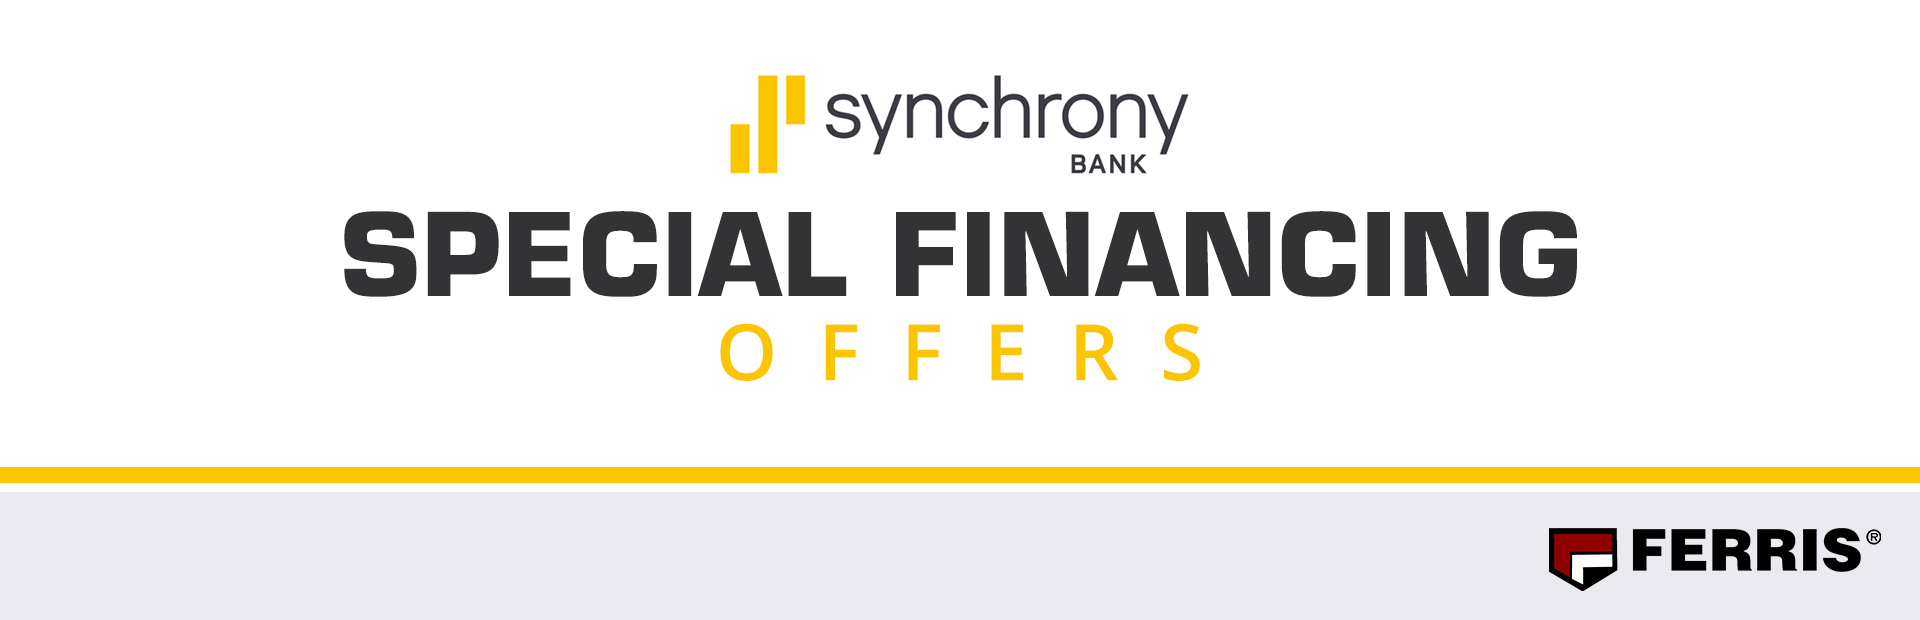 Ferris: Synchrony Bank Special Financing Offers